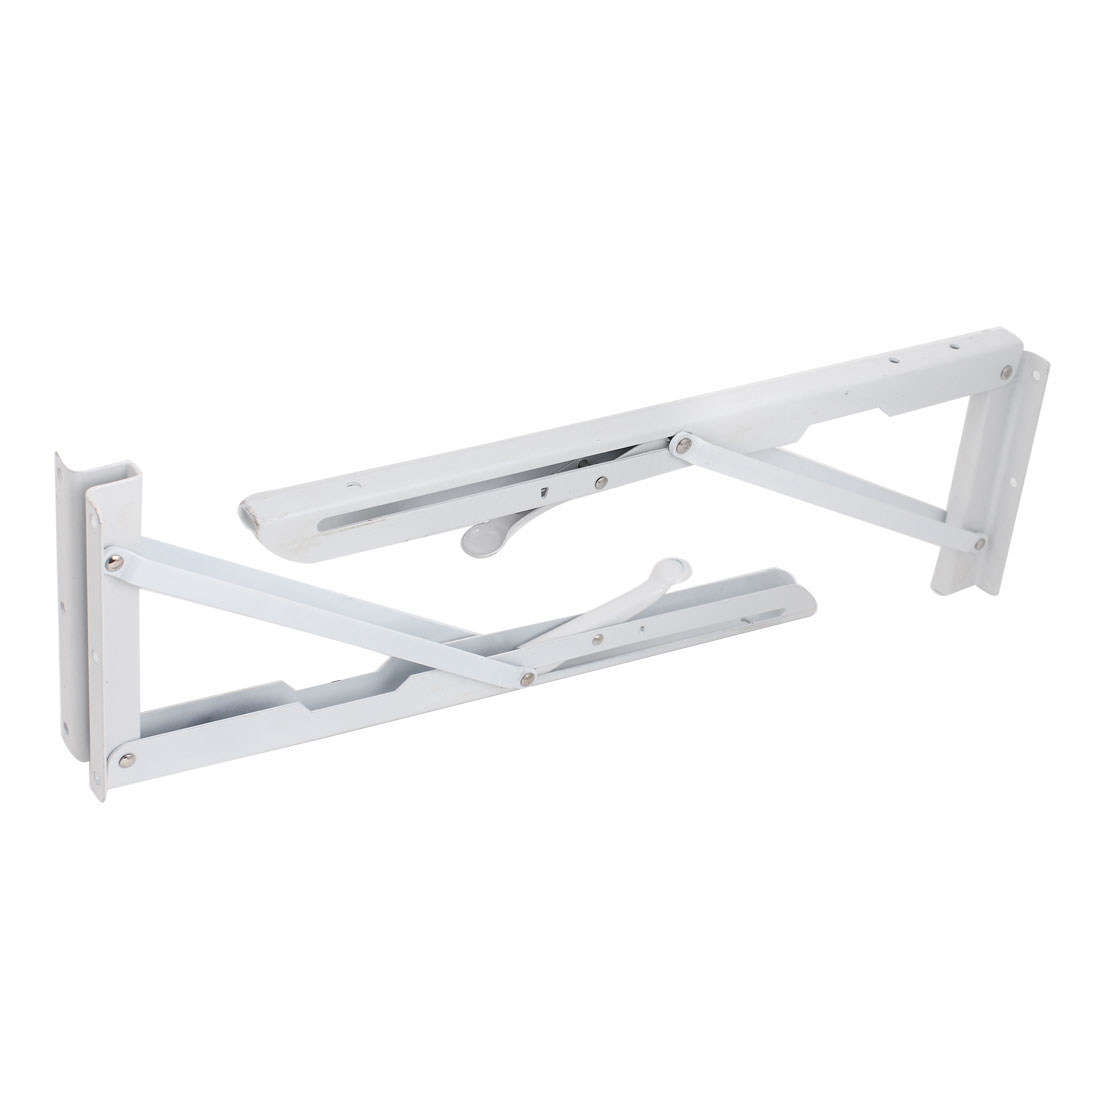 2pcs 40cmx15cm White Metal Long Release Arm Holder Folding Shelf Bracket Support